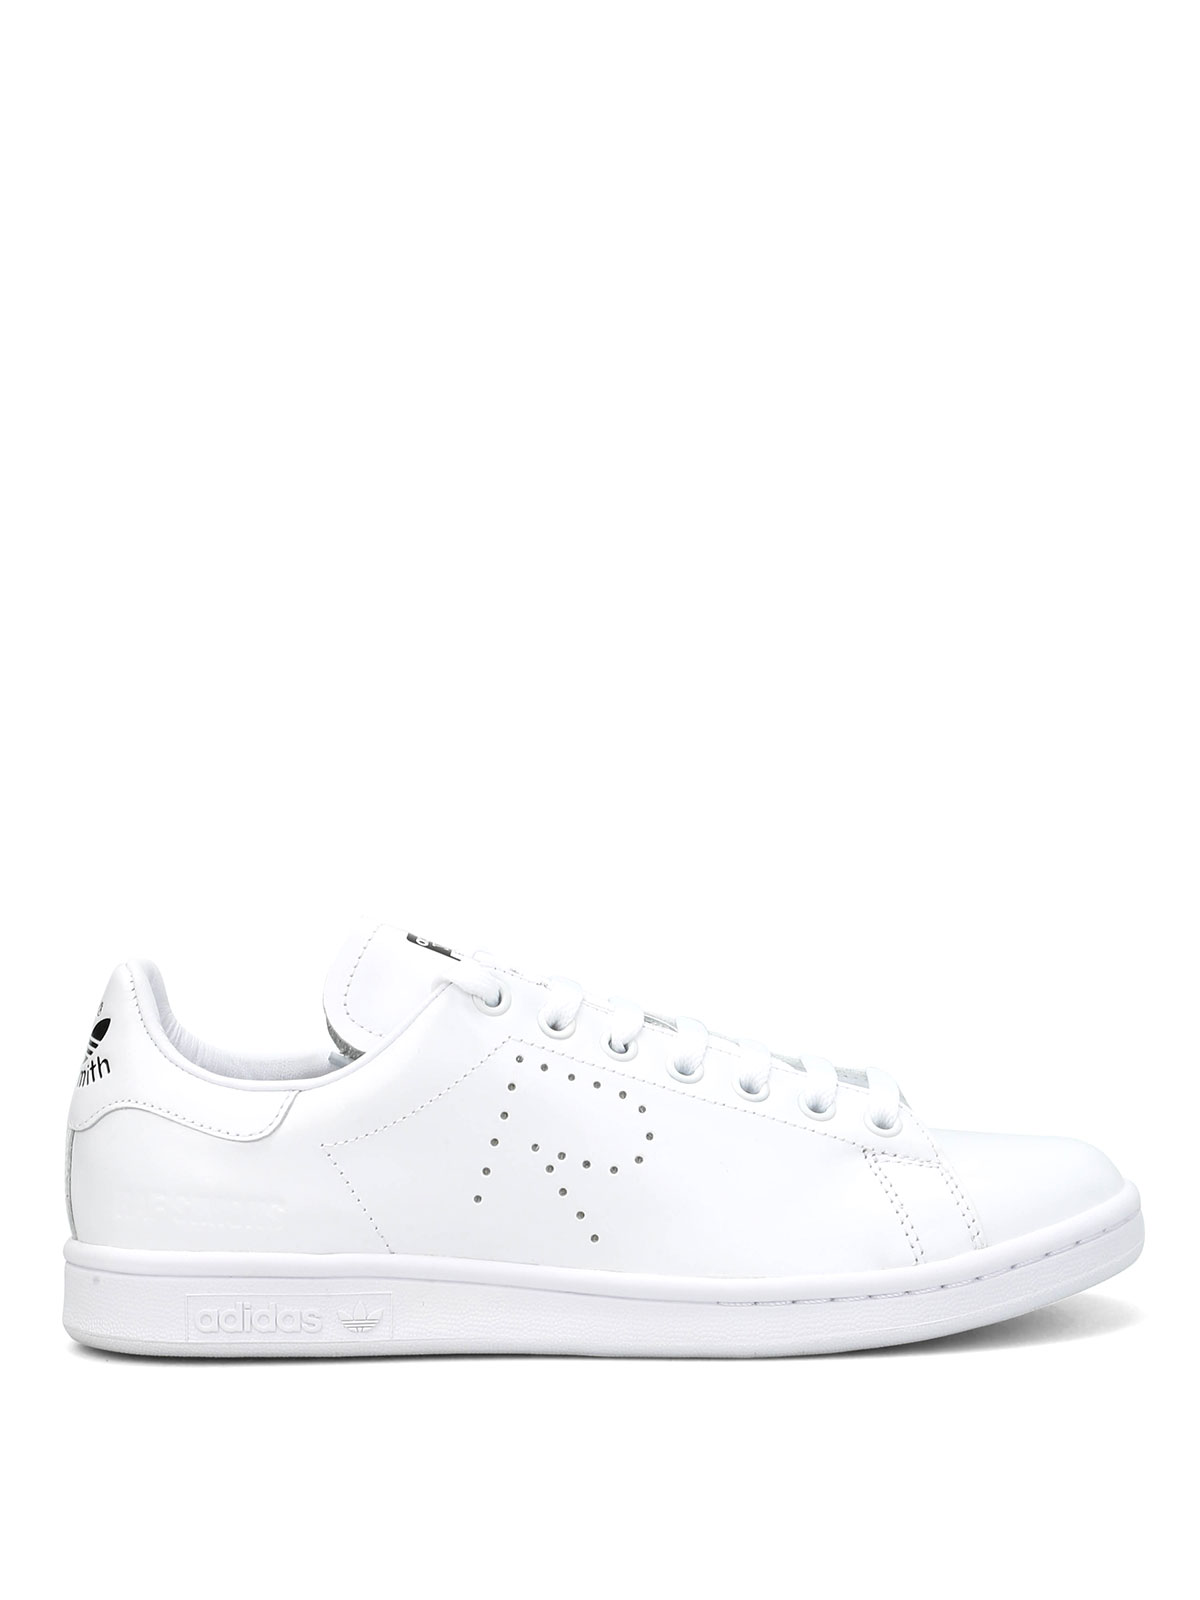 Adidas - Stan Smith lace-up sneakers